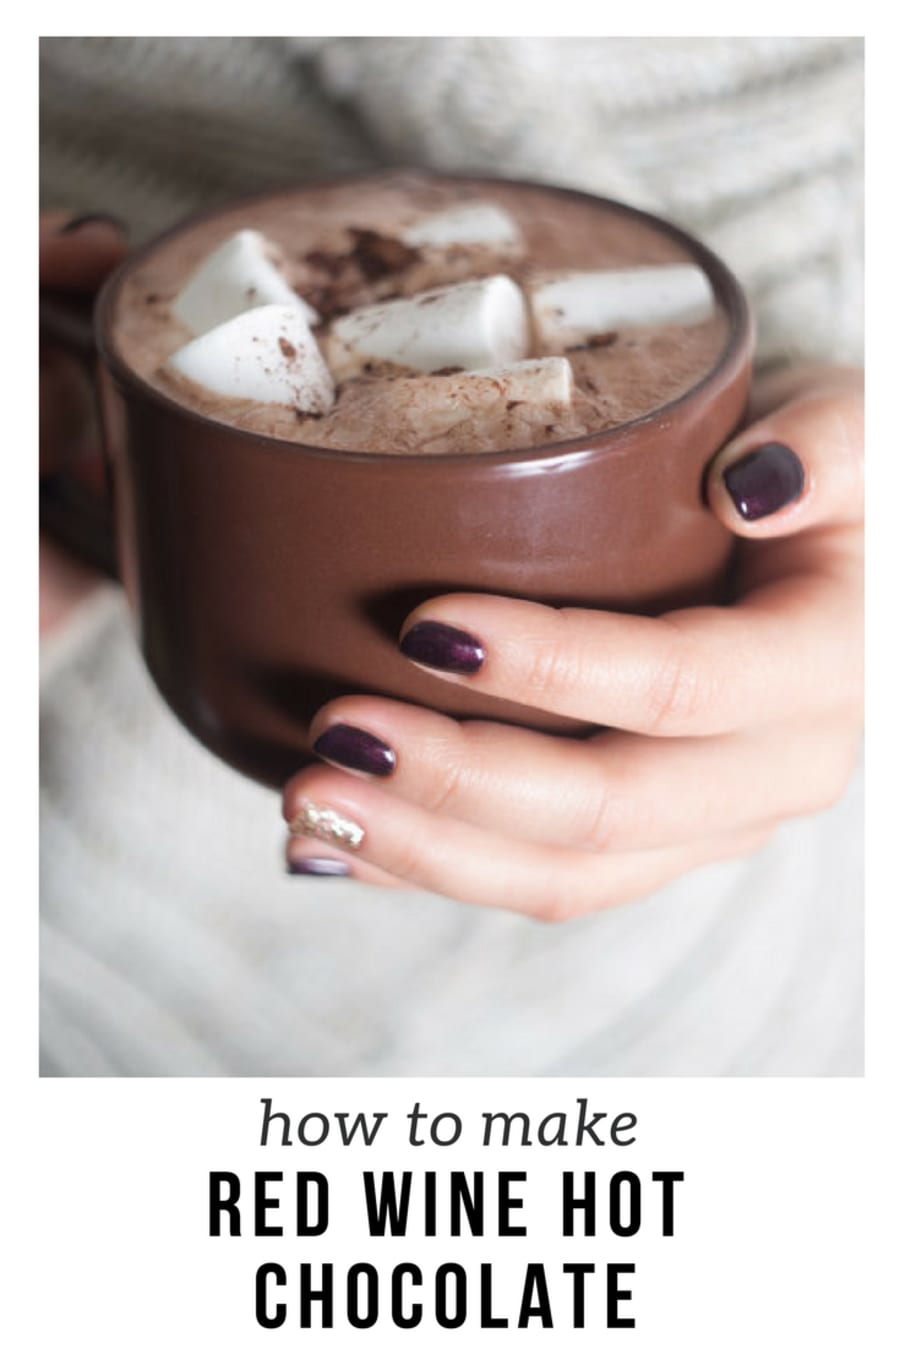 How To Make Red Wine Hot